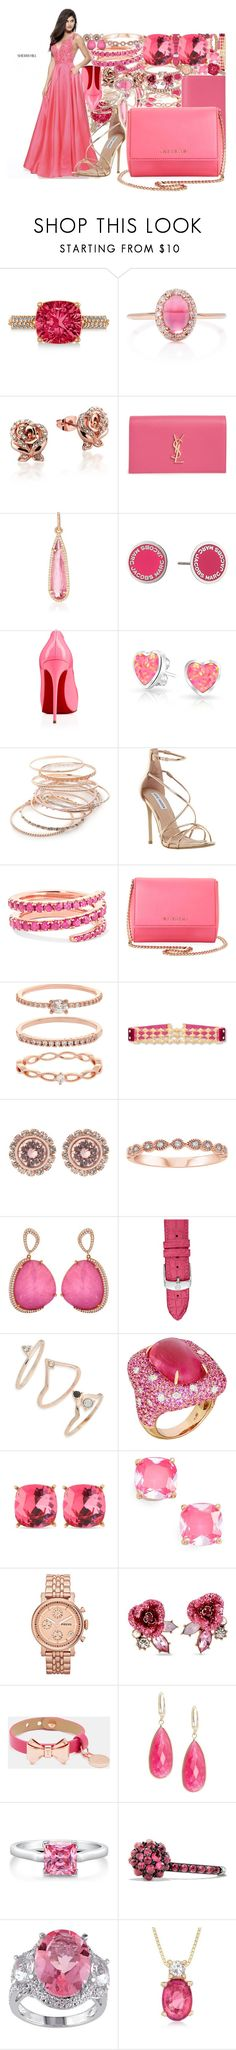 """Untitled #4372"" by brooke-evans12 ❤ liked on Polyvore featuring Sherri Hill, Allurez, Marlo Laz, Disney, Yves Saint Laurent, Irene Neuwirth, Marc Jacobs, Privé, Bling Jewelry and Red Camel"